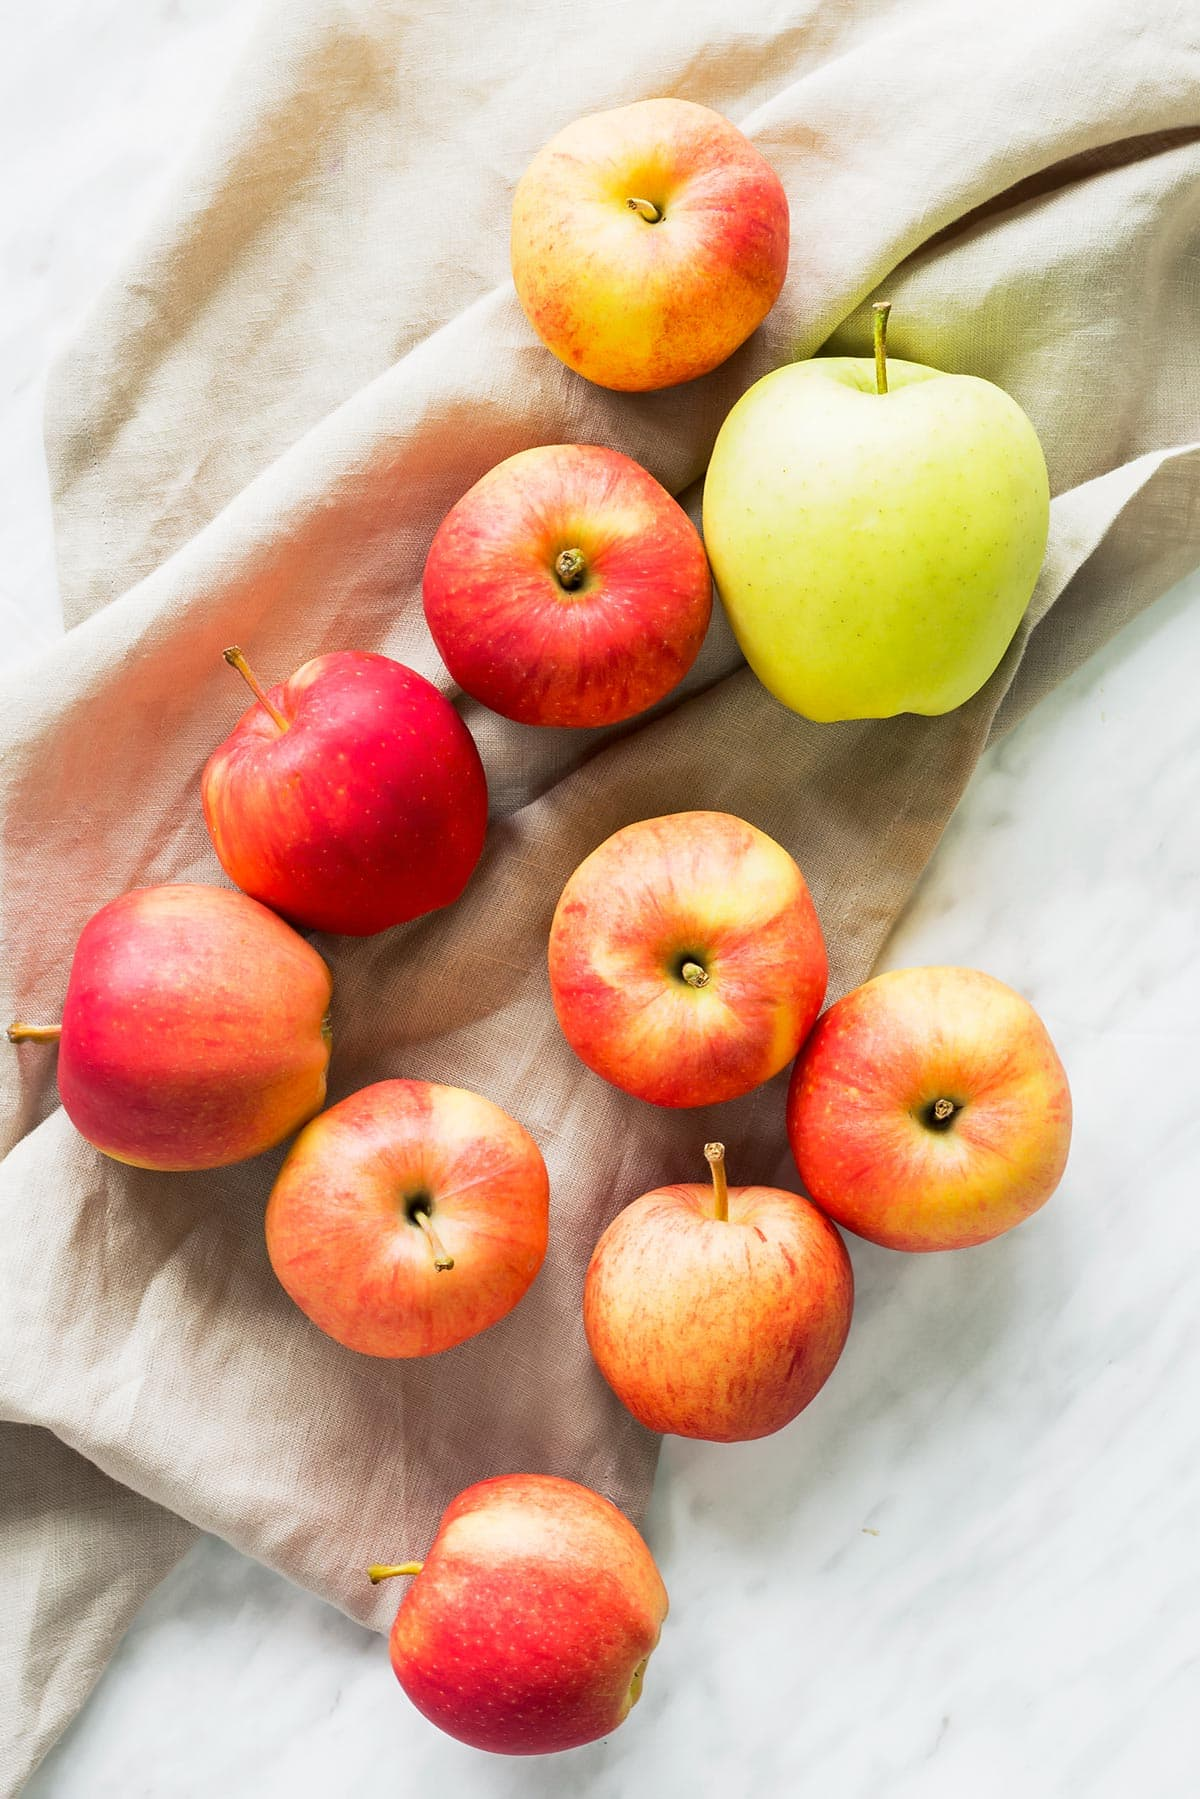 Best Apples for Applesauce laid out on table